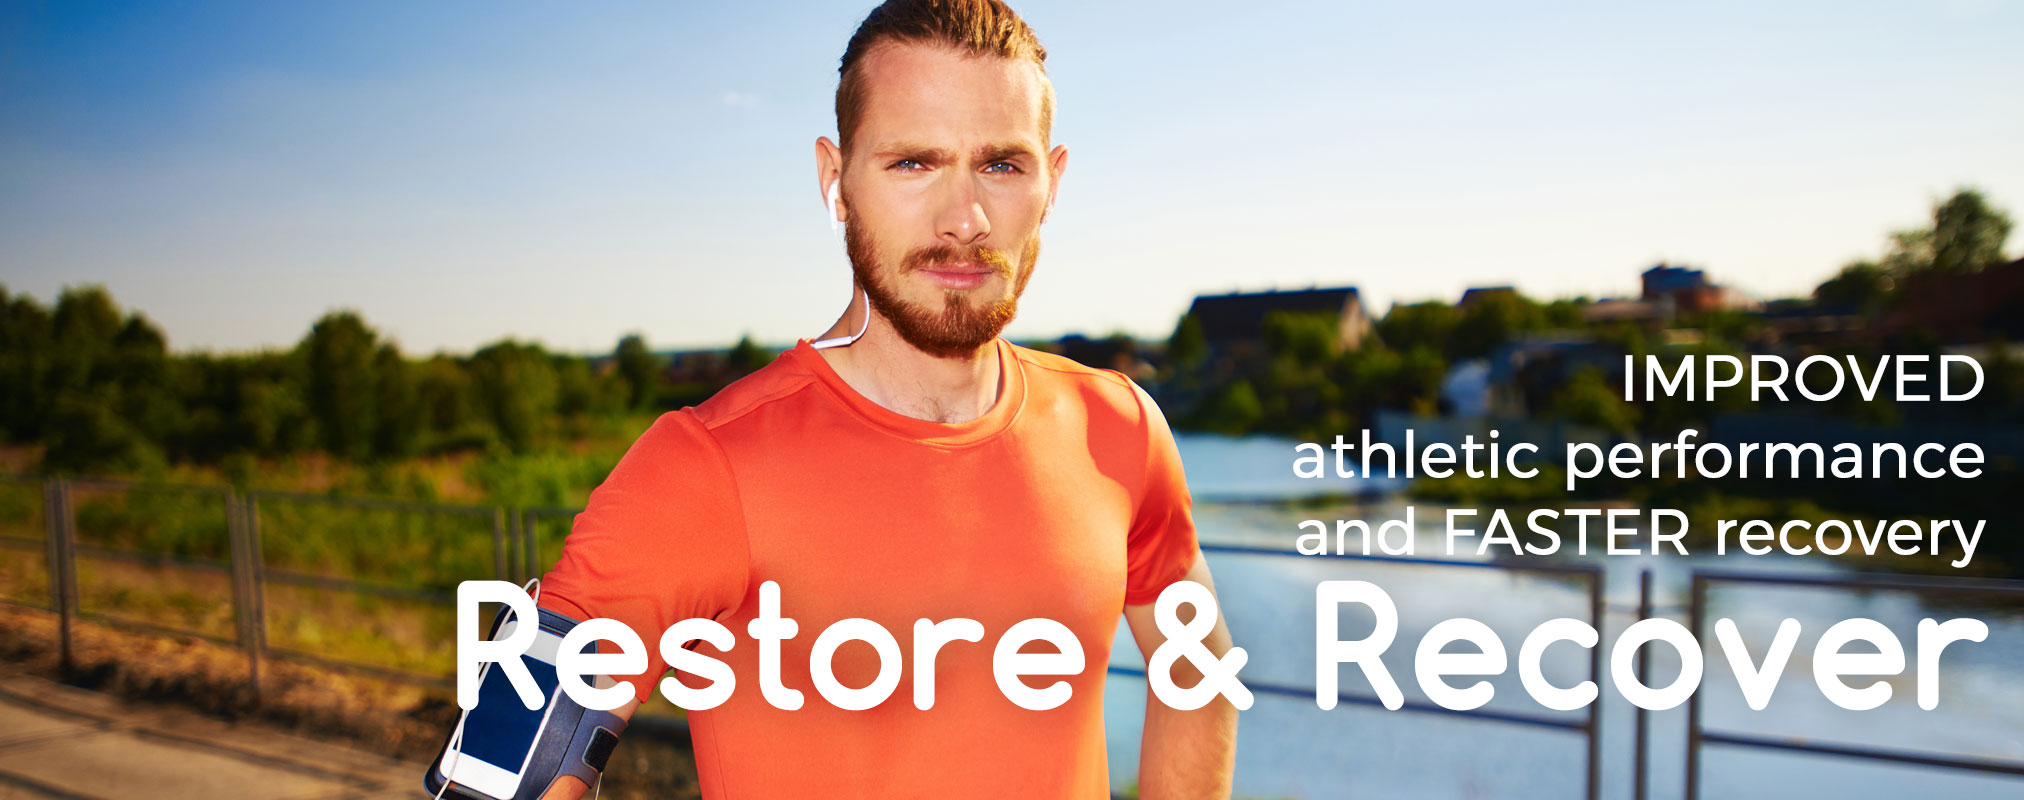 Restore & Recover